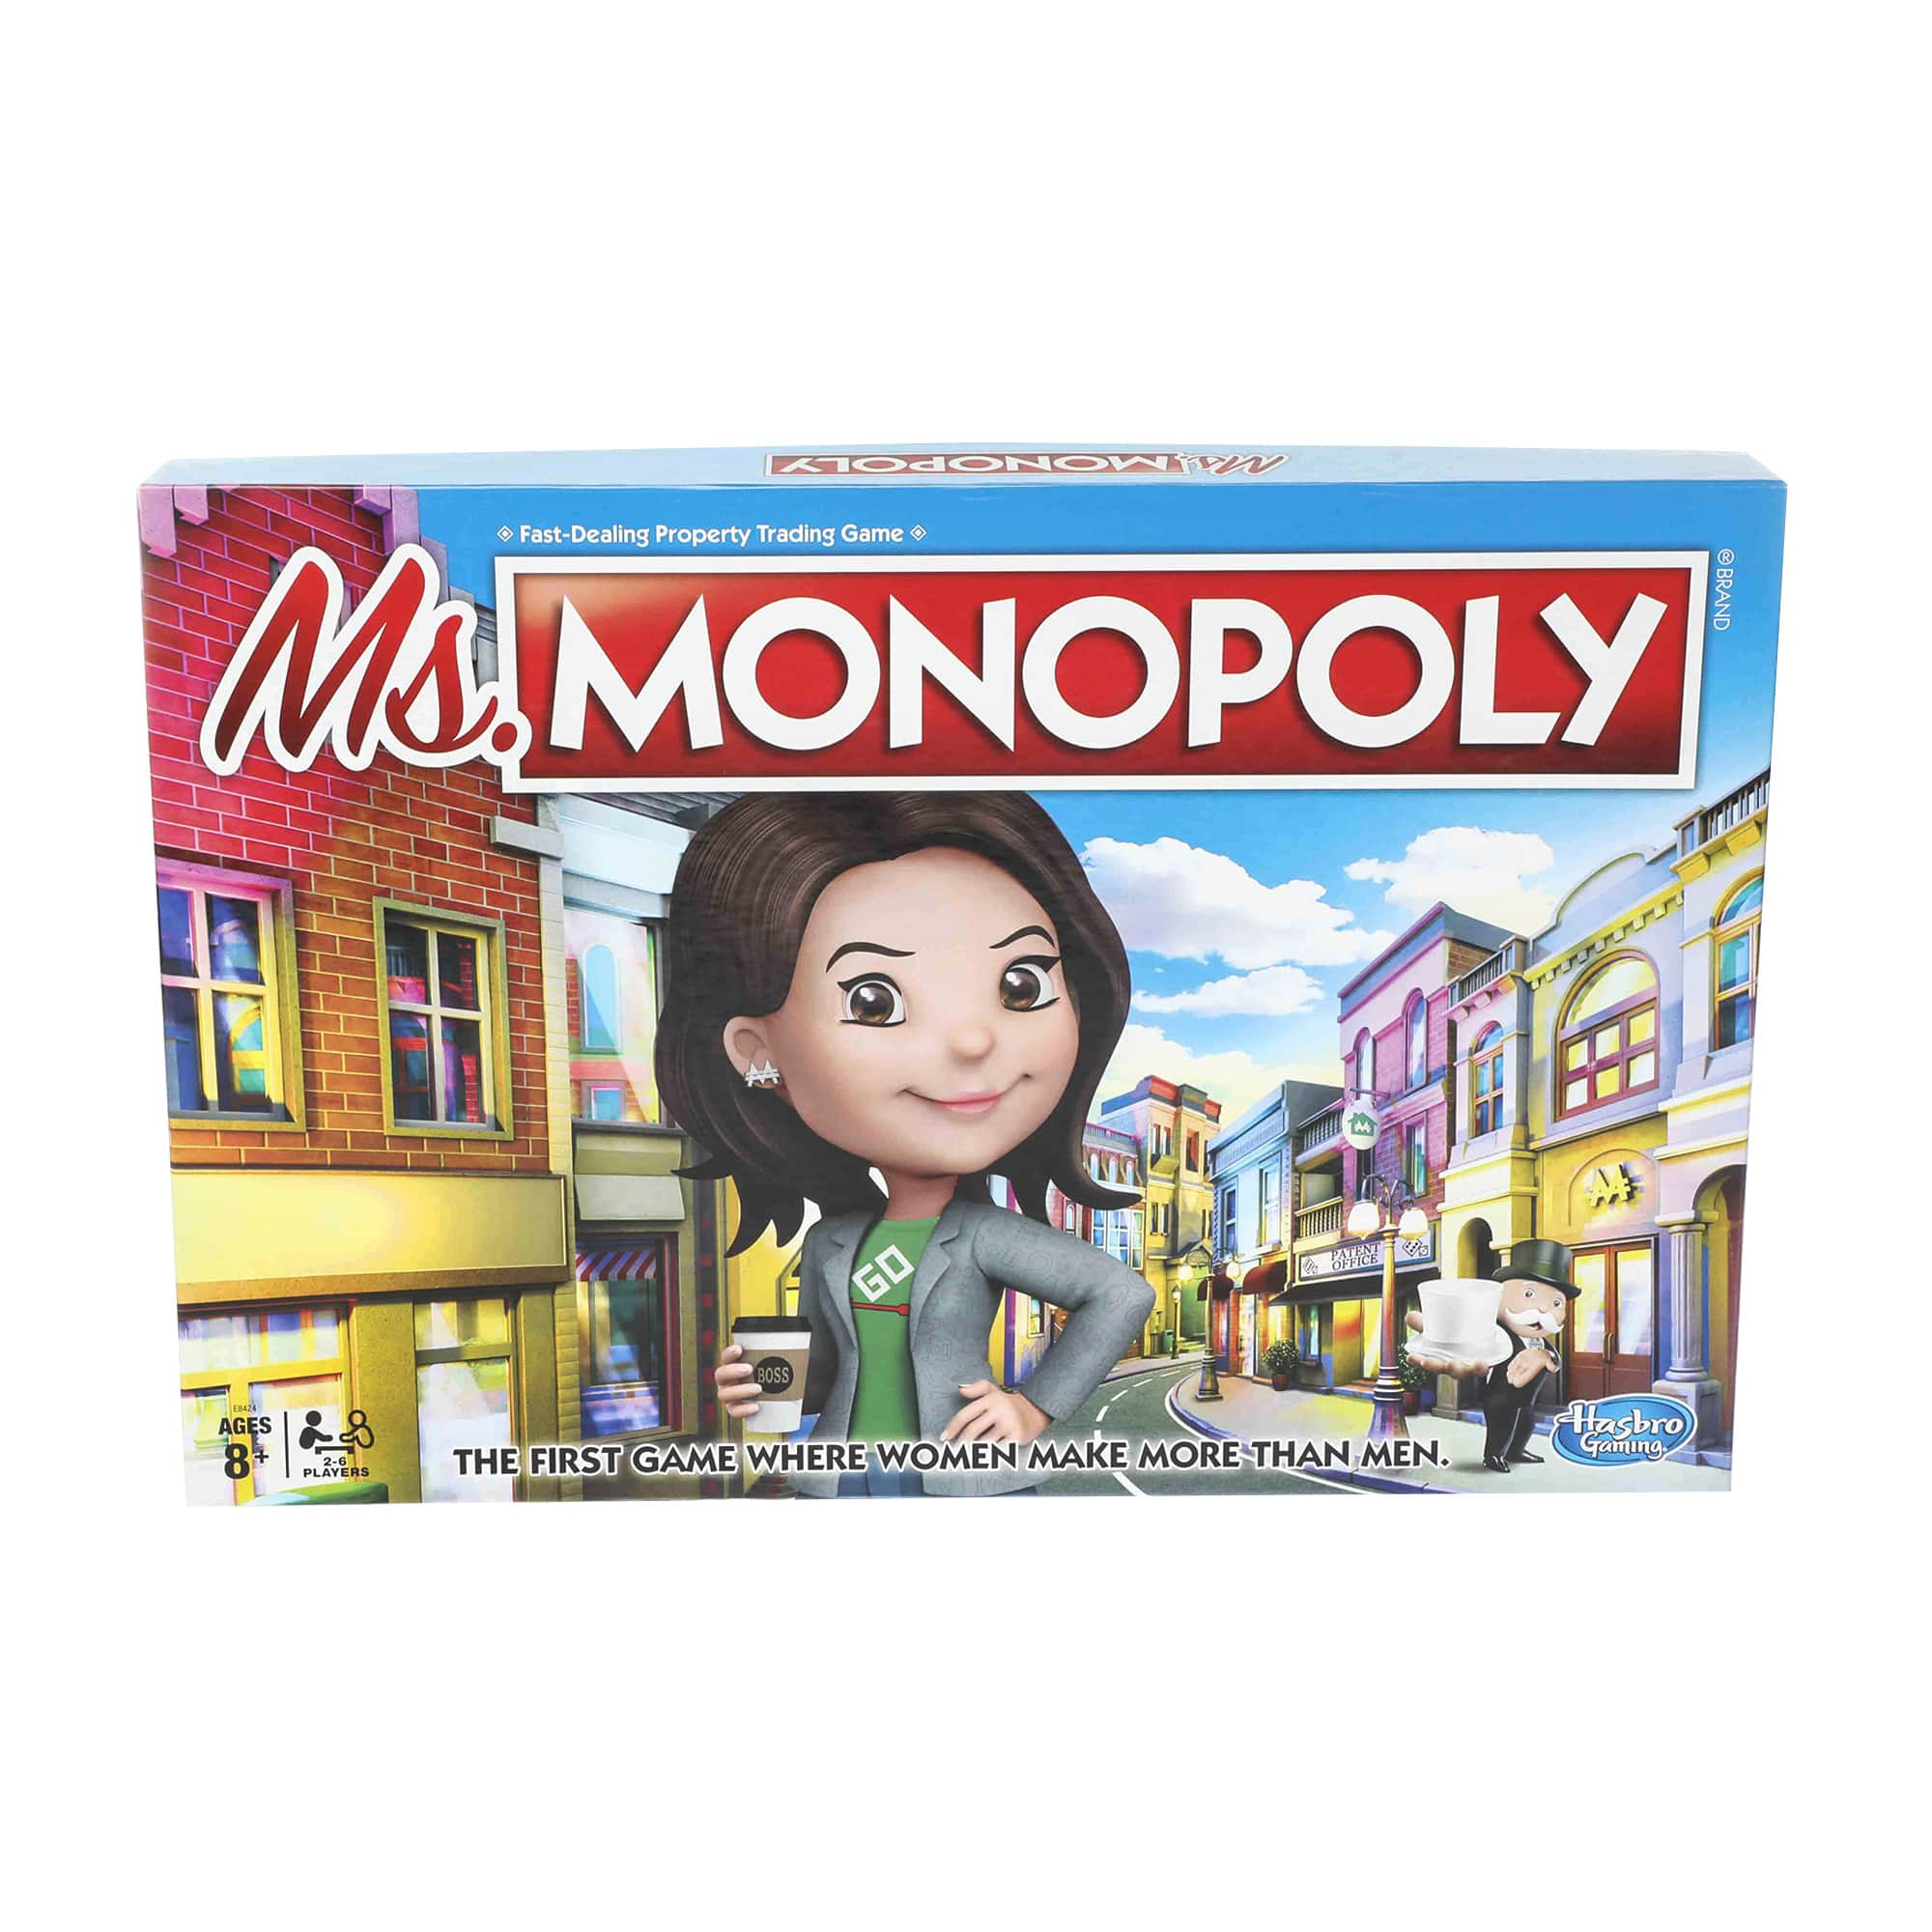 Monopoly Board Game for Families and Kids Ages 8 and Up: $5.05